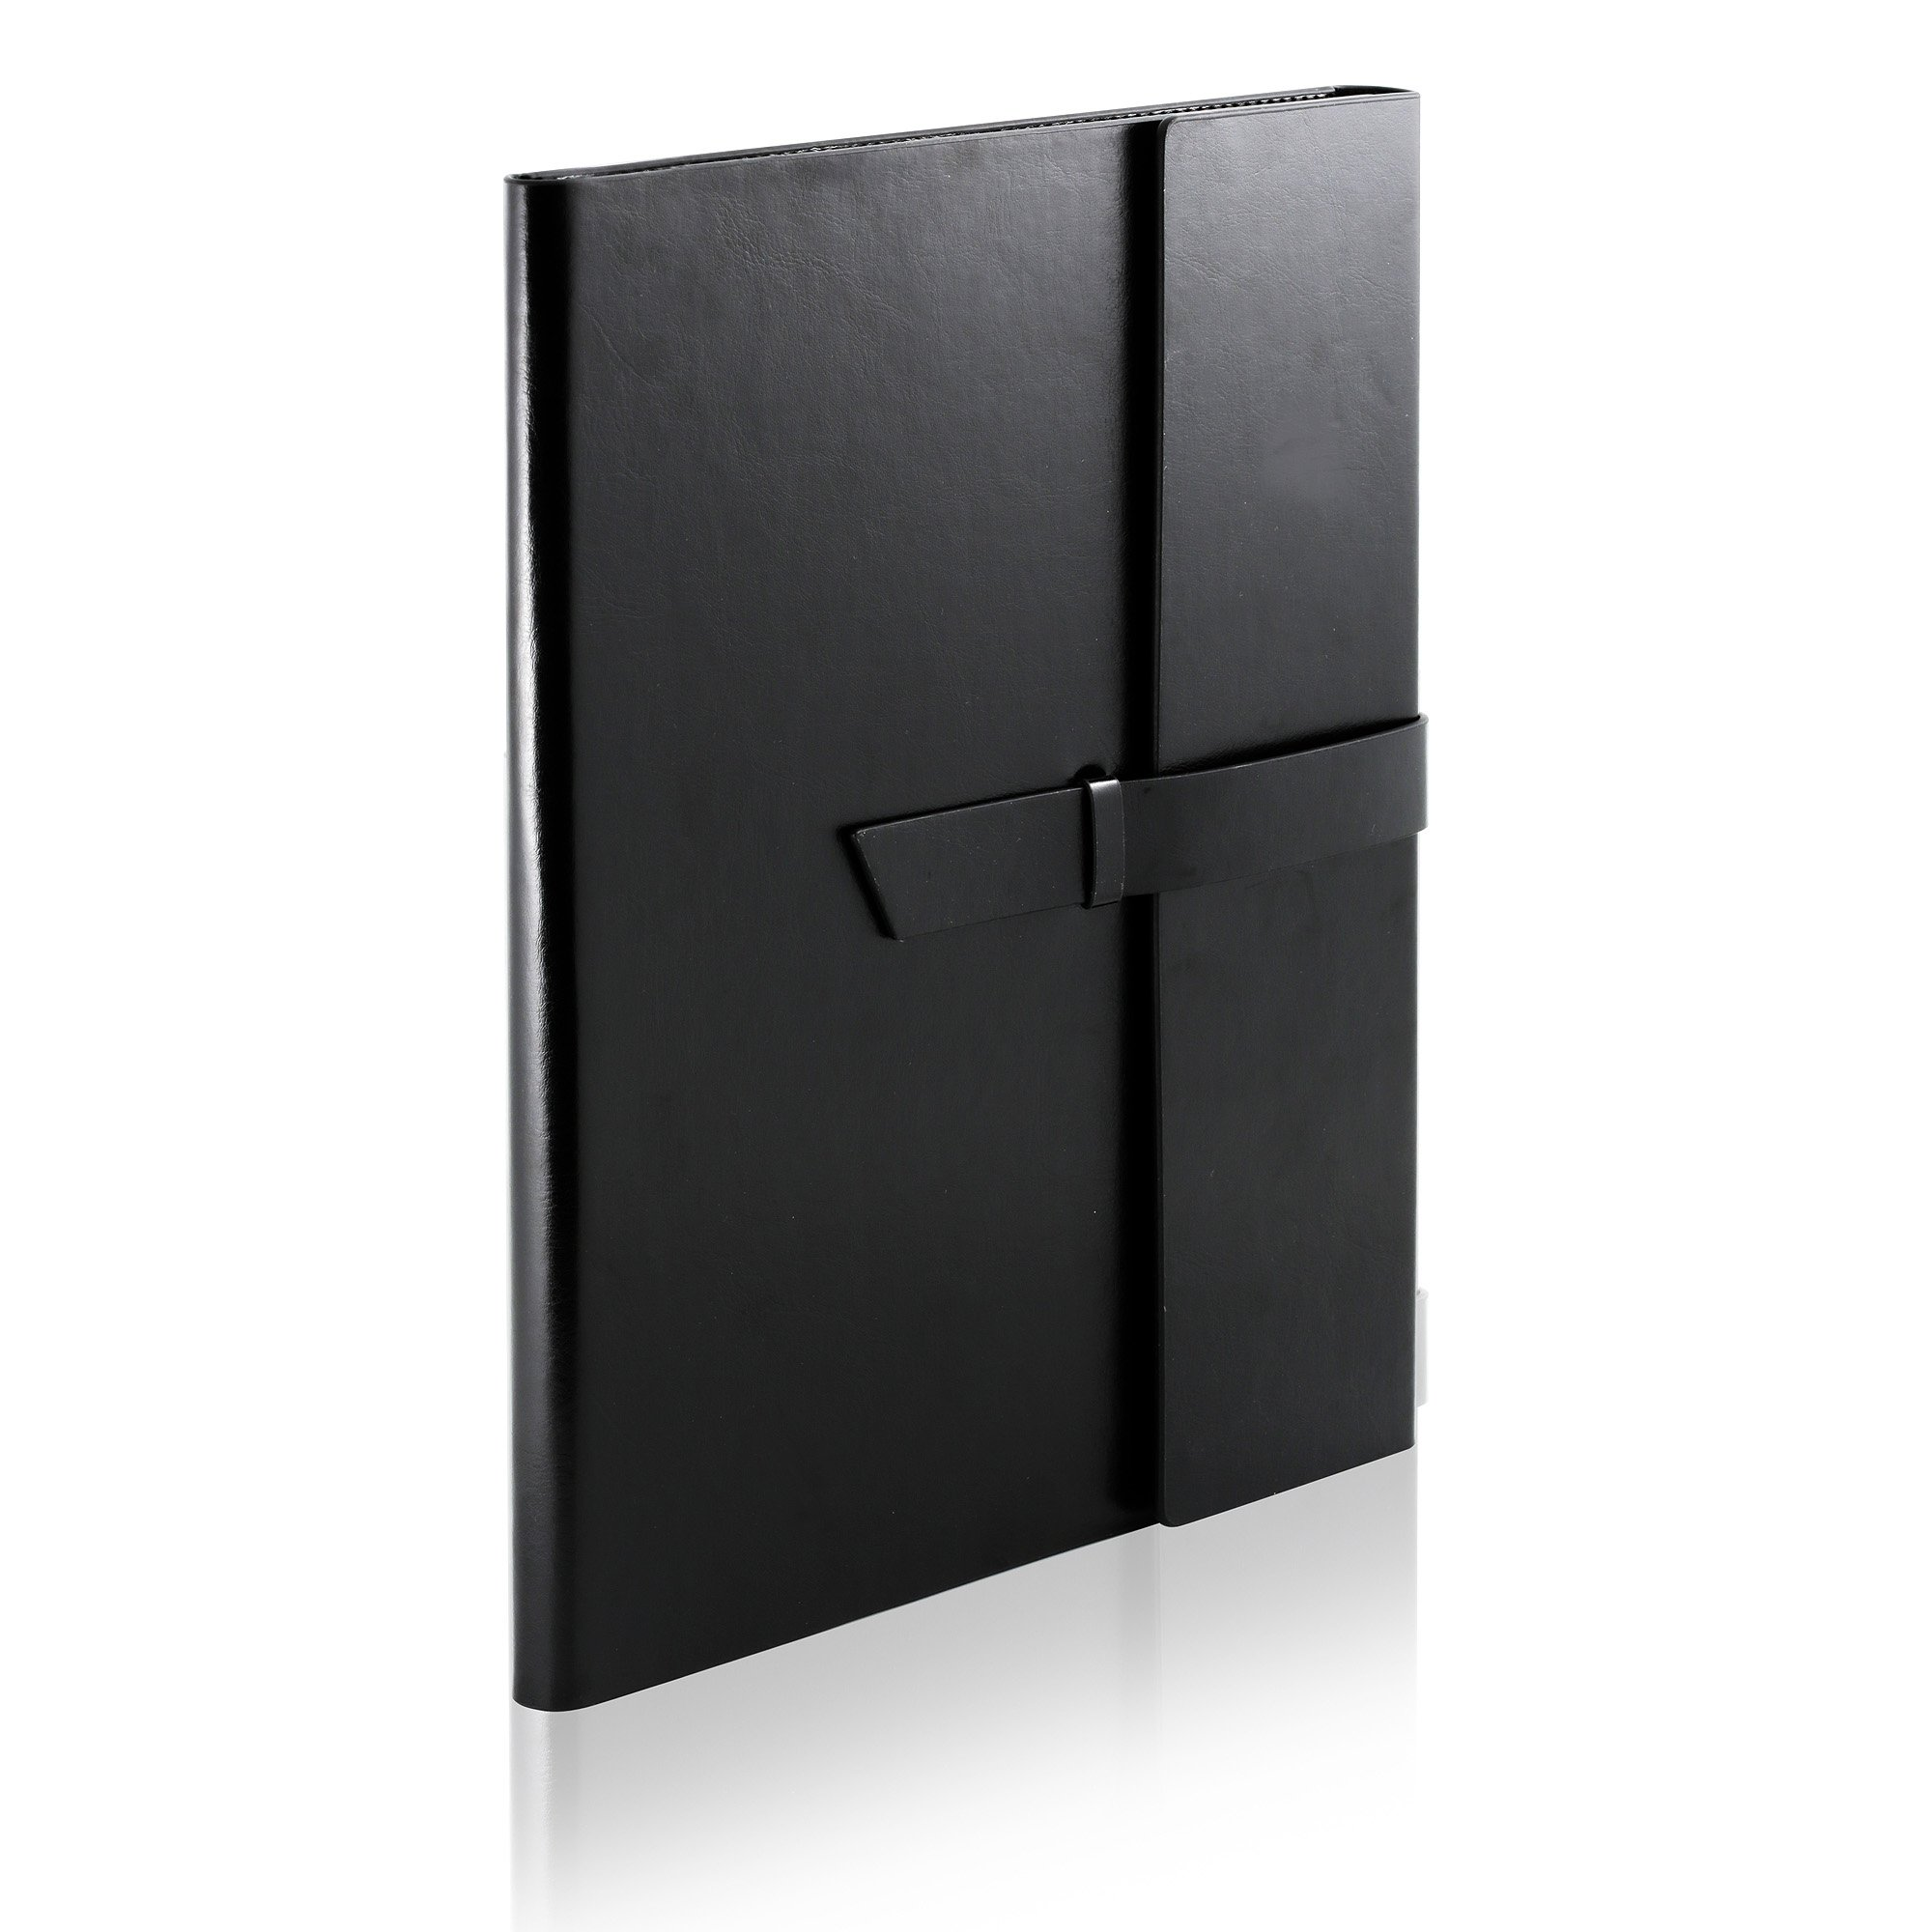 Gallaway Leather Padfolio Portfolio Folder - Perfect for your Interviews, Resumes, Presentations and Meetings and it fits Letter, Legal, A4 Notebooks and Notepads (Black)